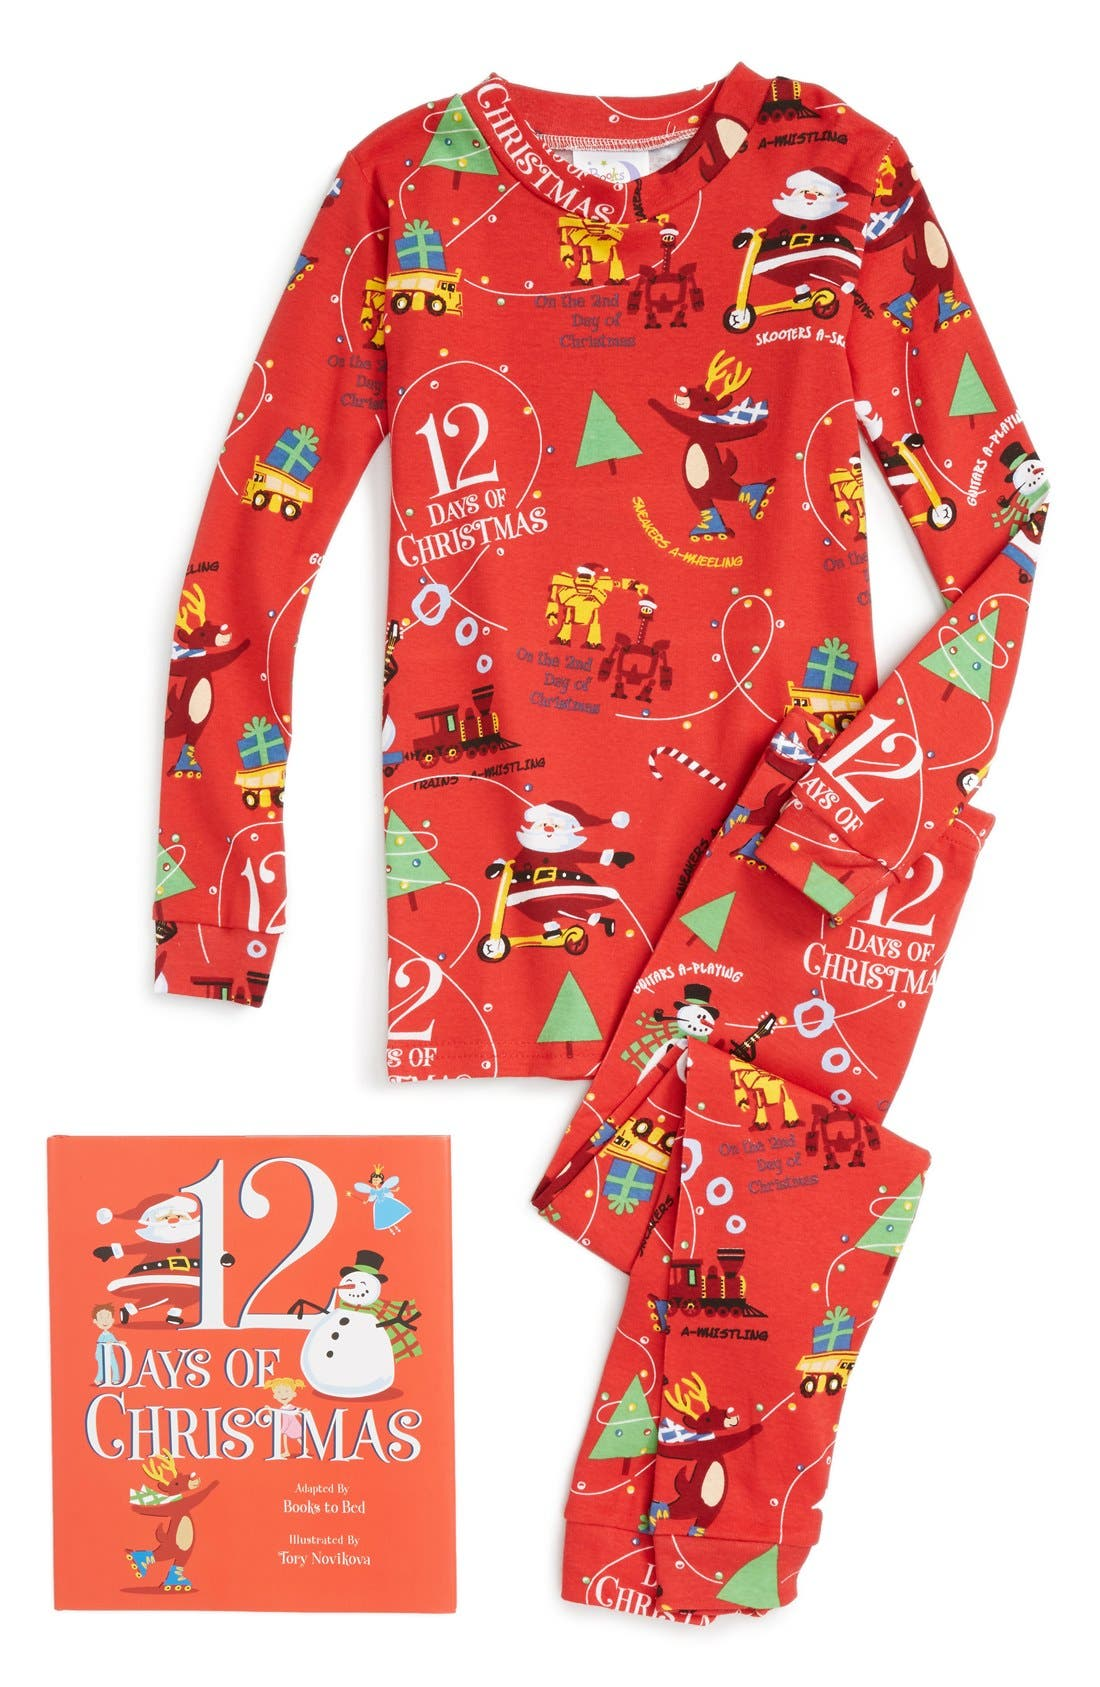 Main Image - Books to Bed 12 Days of Christmas Fitted Two-Piece Pajamas & Book Set (Toddler, Little Kid & Big Kid)